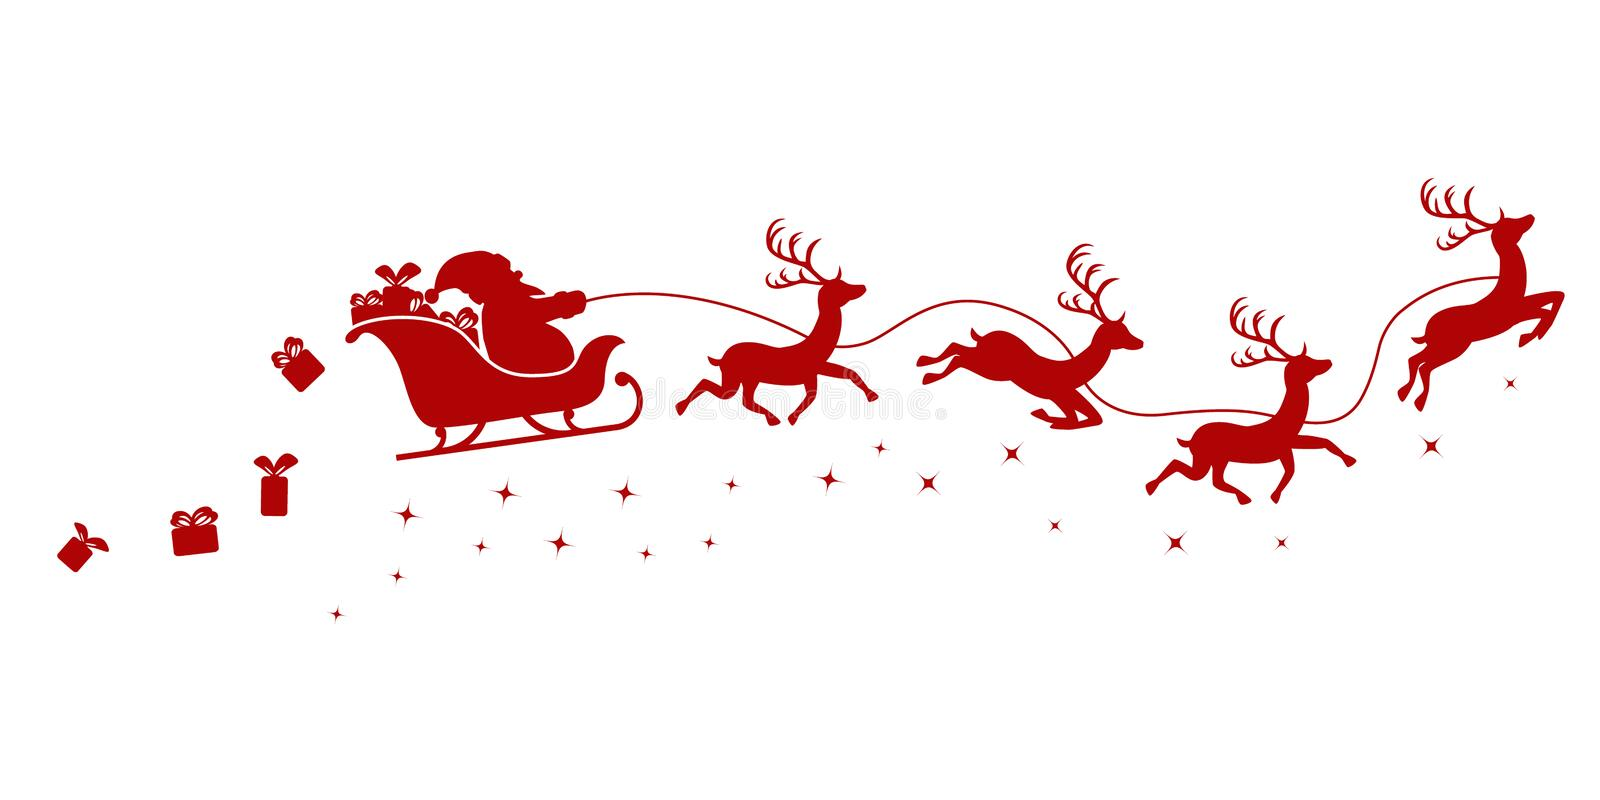 Silhouette of Santa on a sleigh flying with deer and throwing gifts on a white. vector illustration